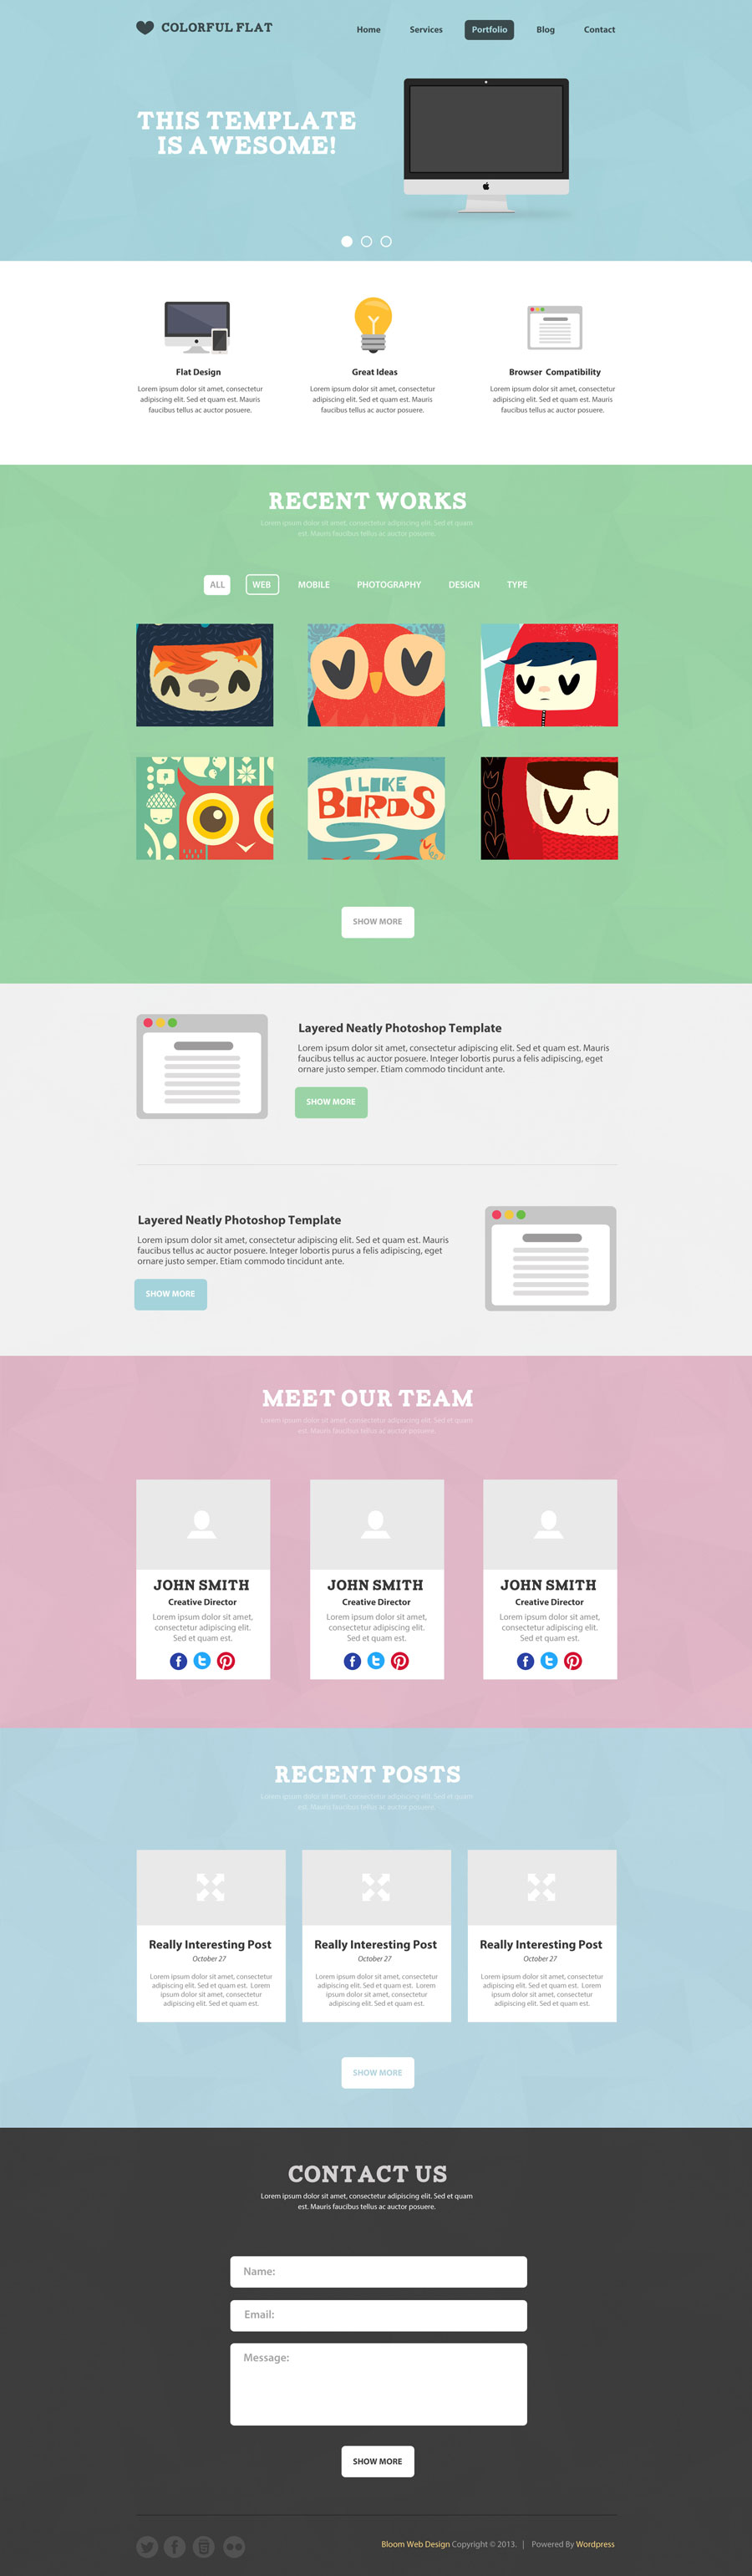 Colorful Flat One Page Web Template | Web Design | Pinterest ...